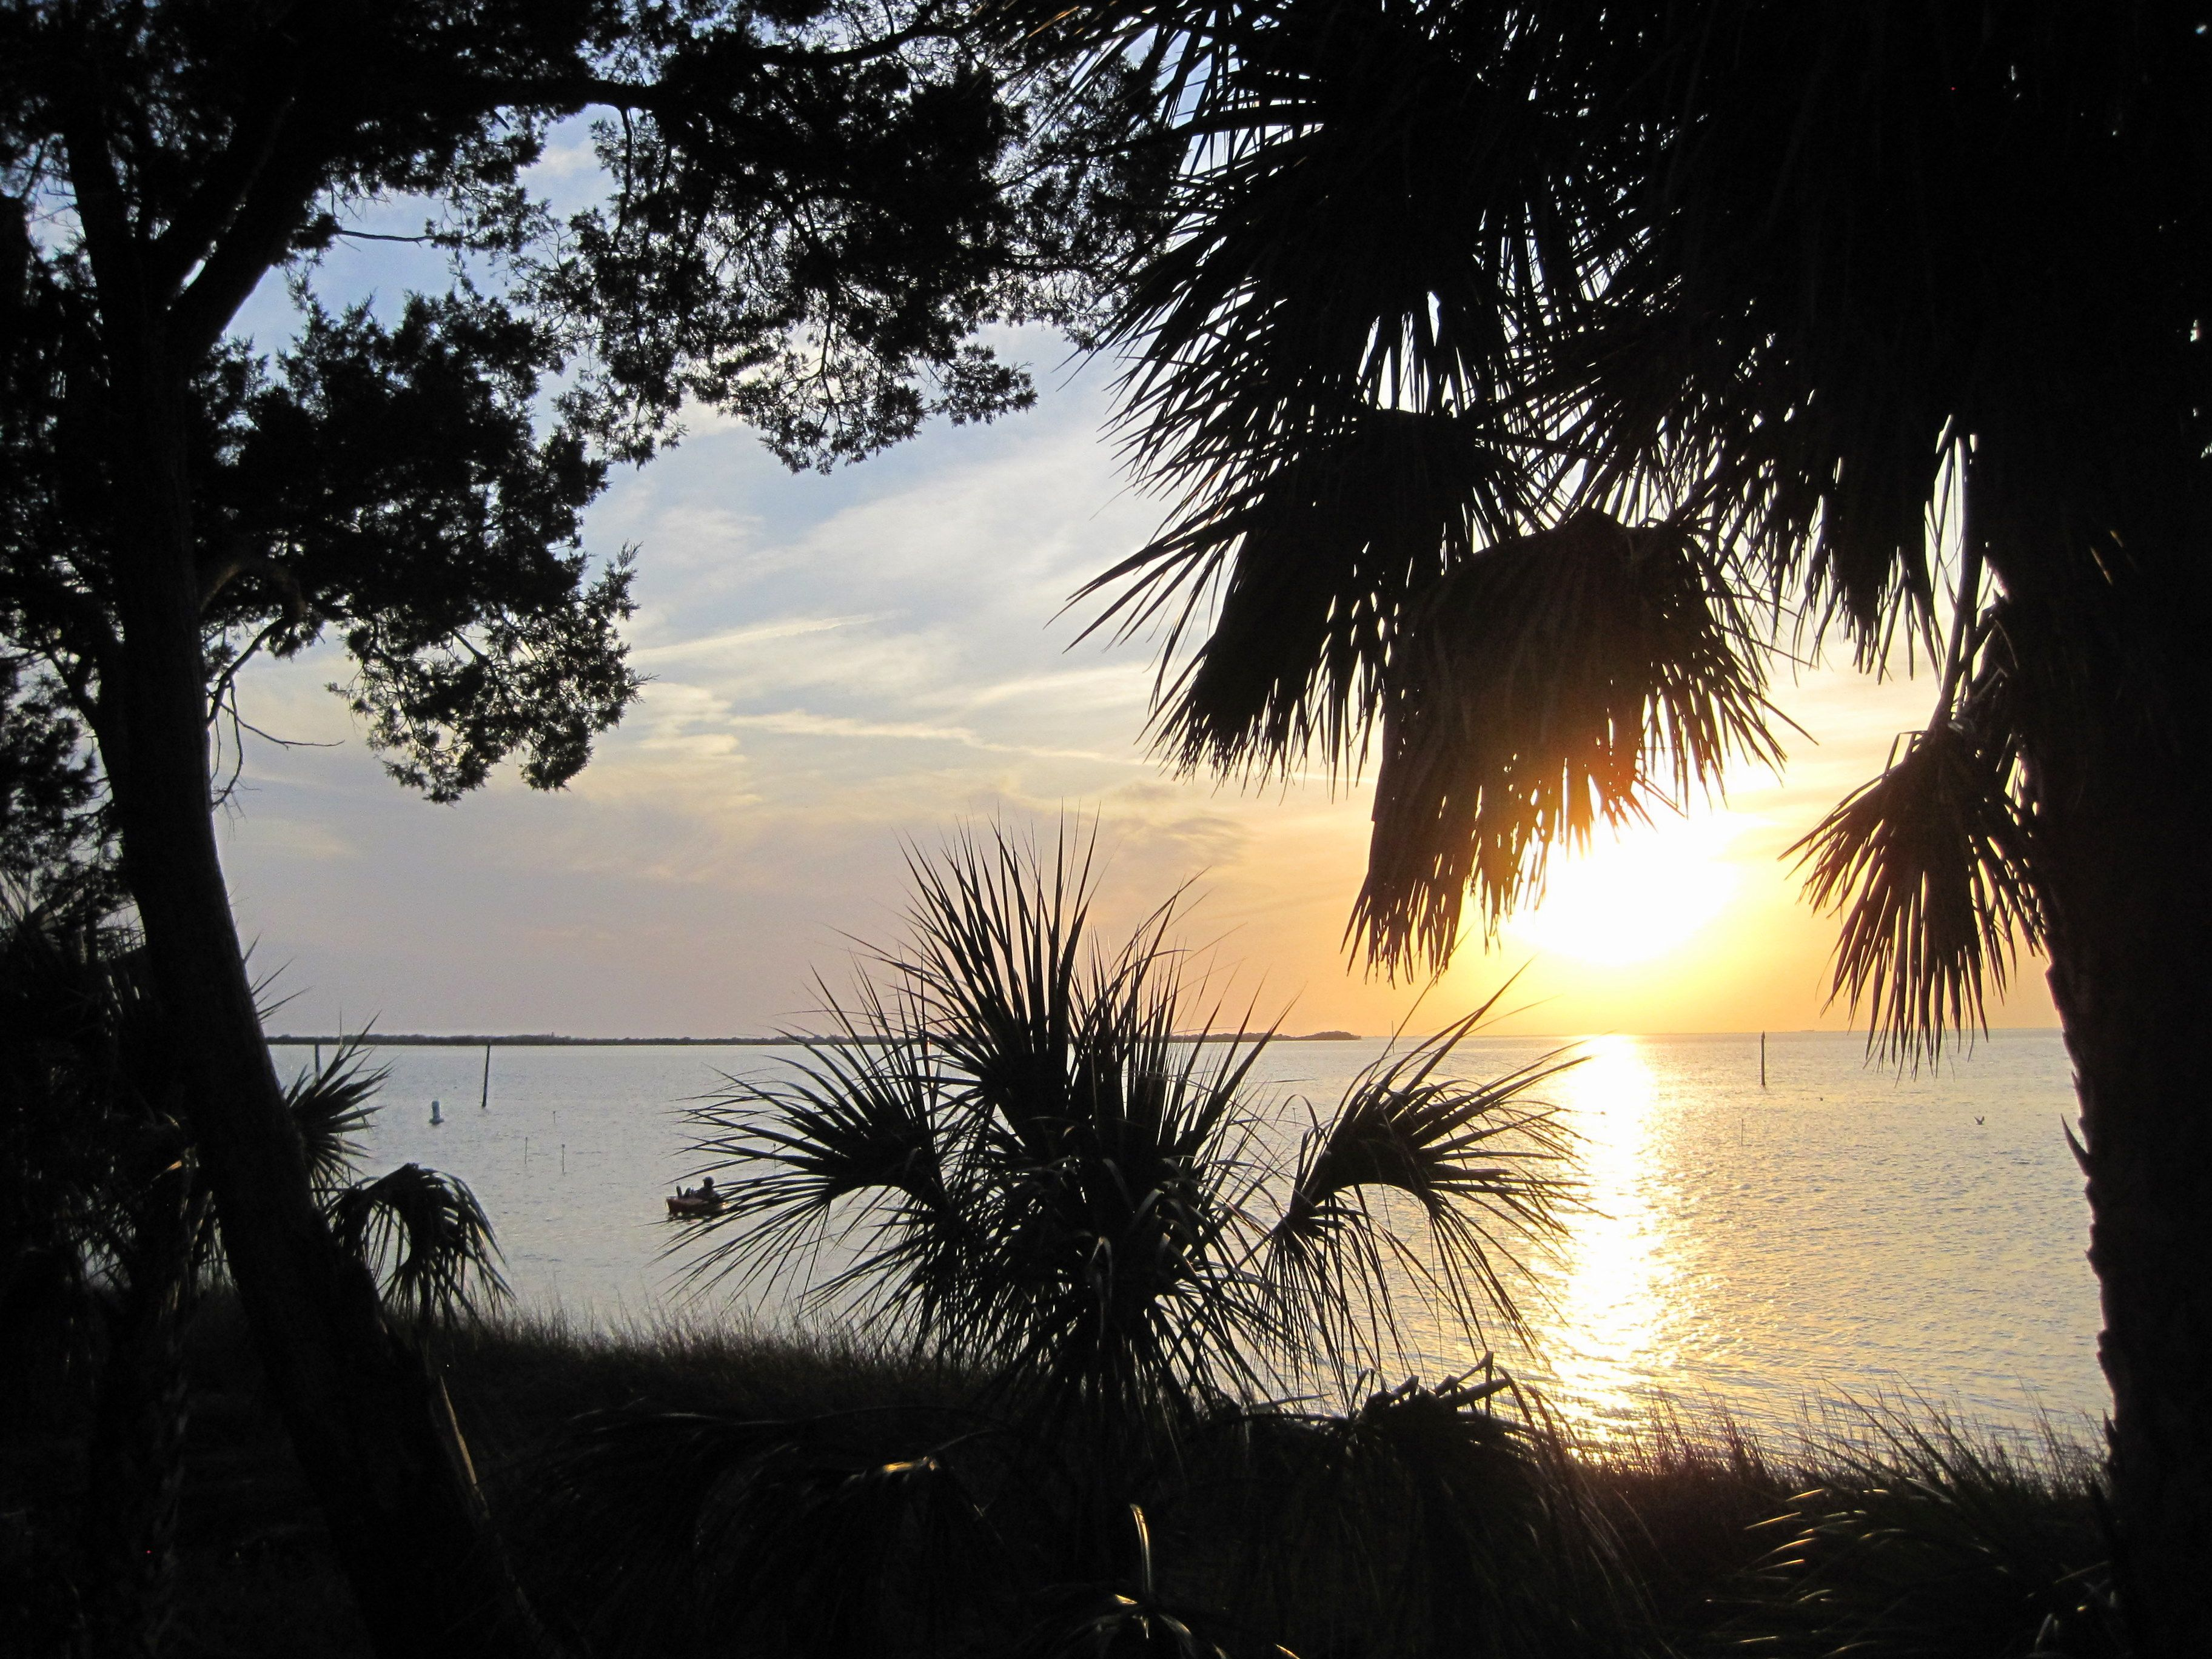 Pine Island Beach Hernando County Florida The Girls And I Spent Many A Great Day Here